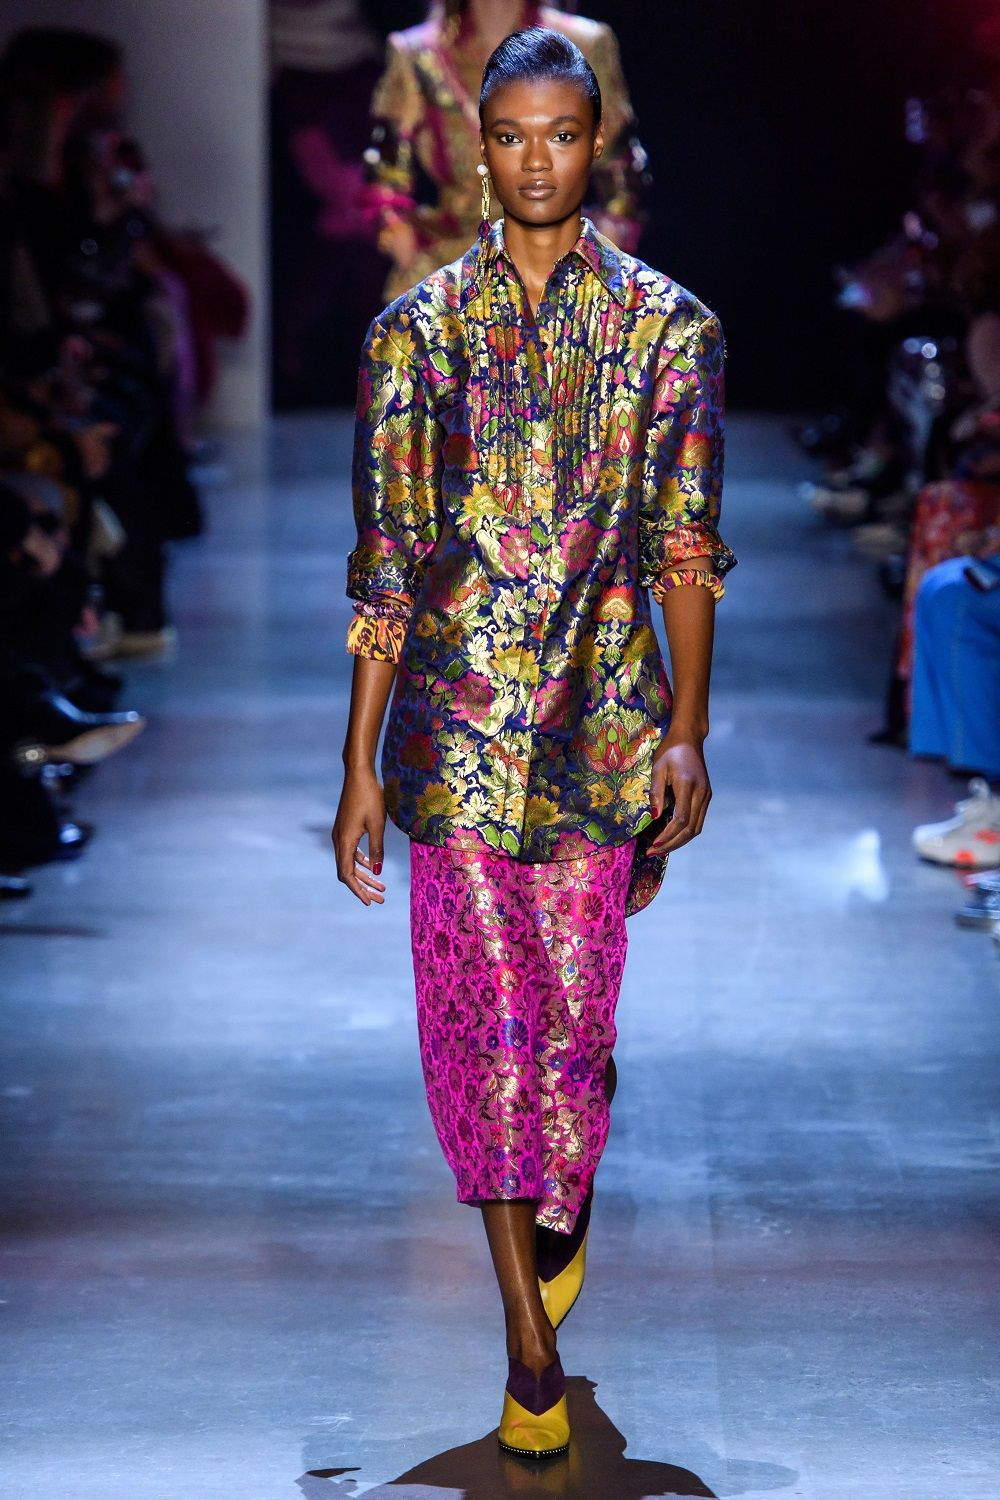 Floral Power! Motif Manis Ini Ramaikan Panggung New York Fashion Week